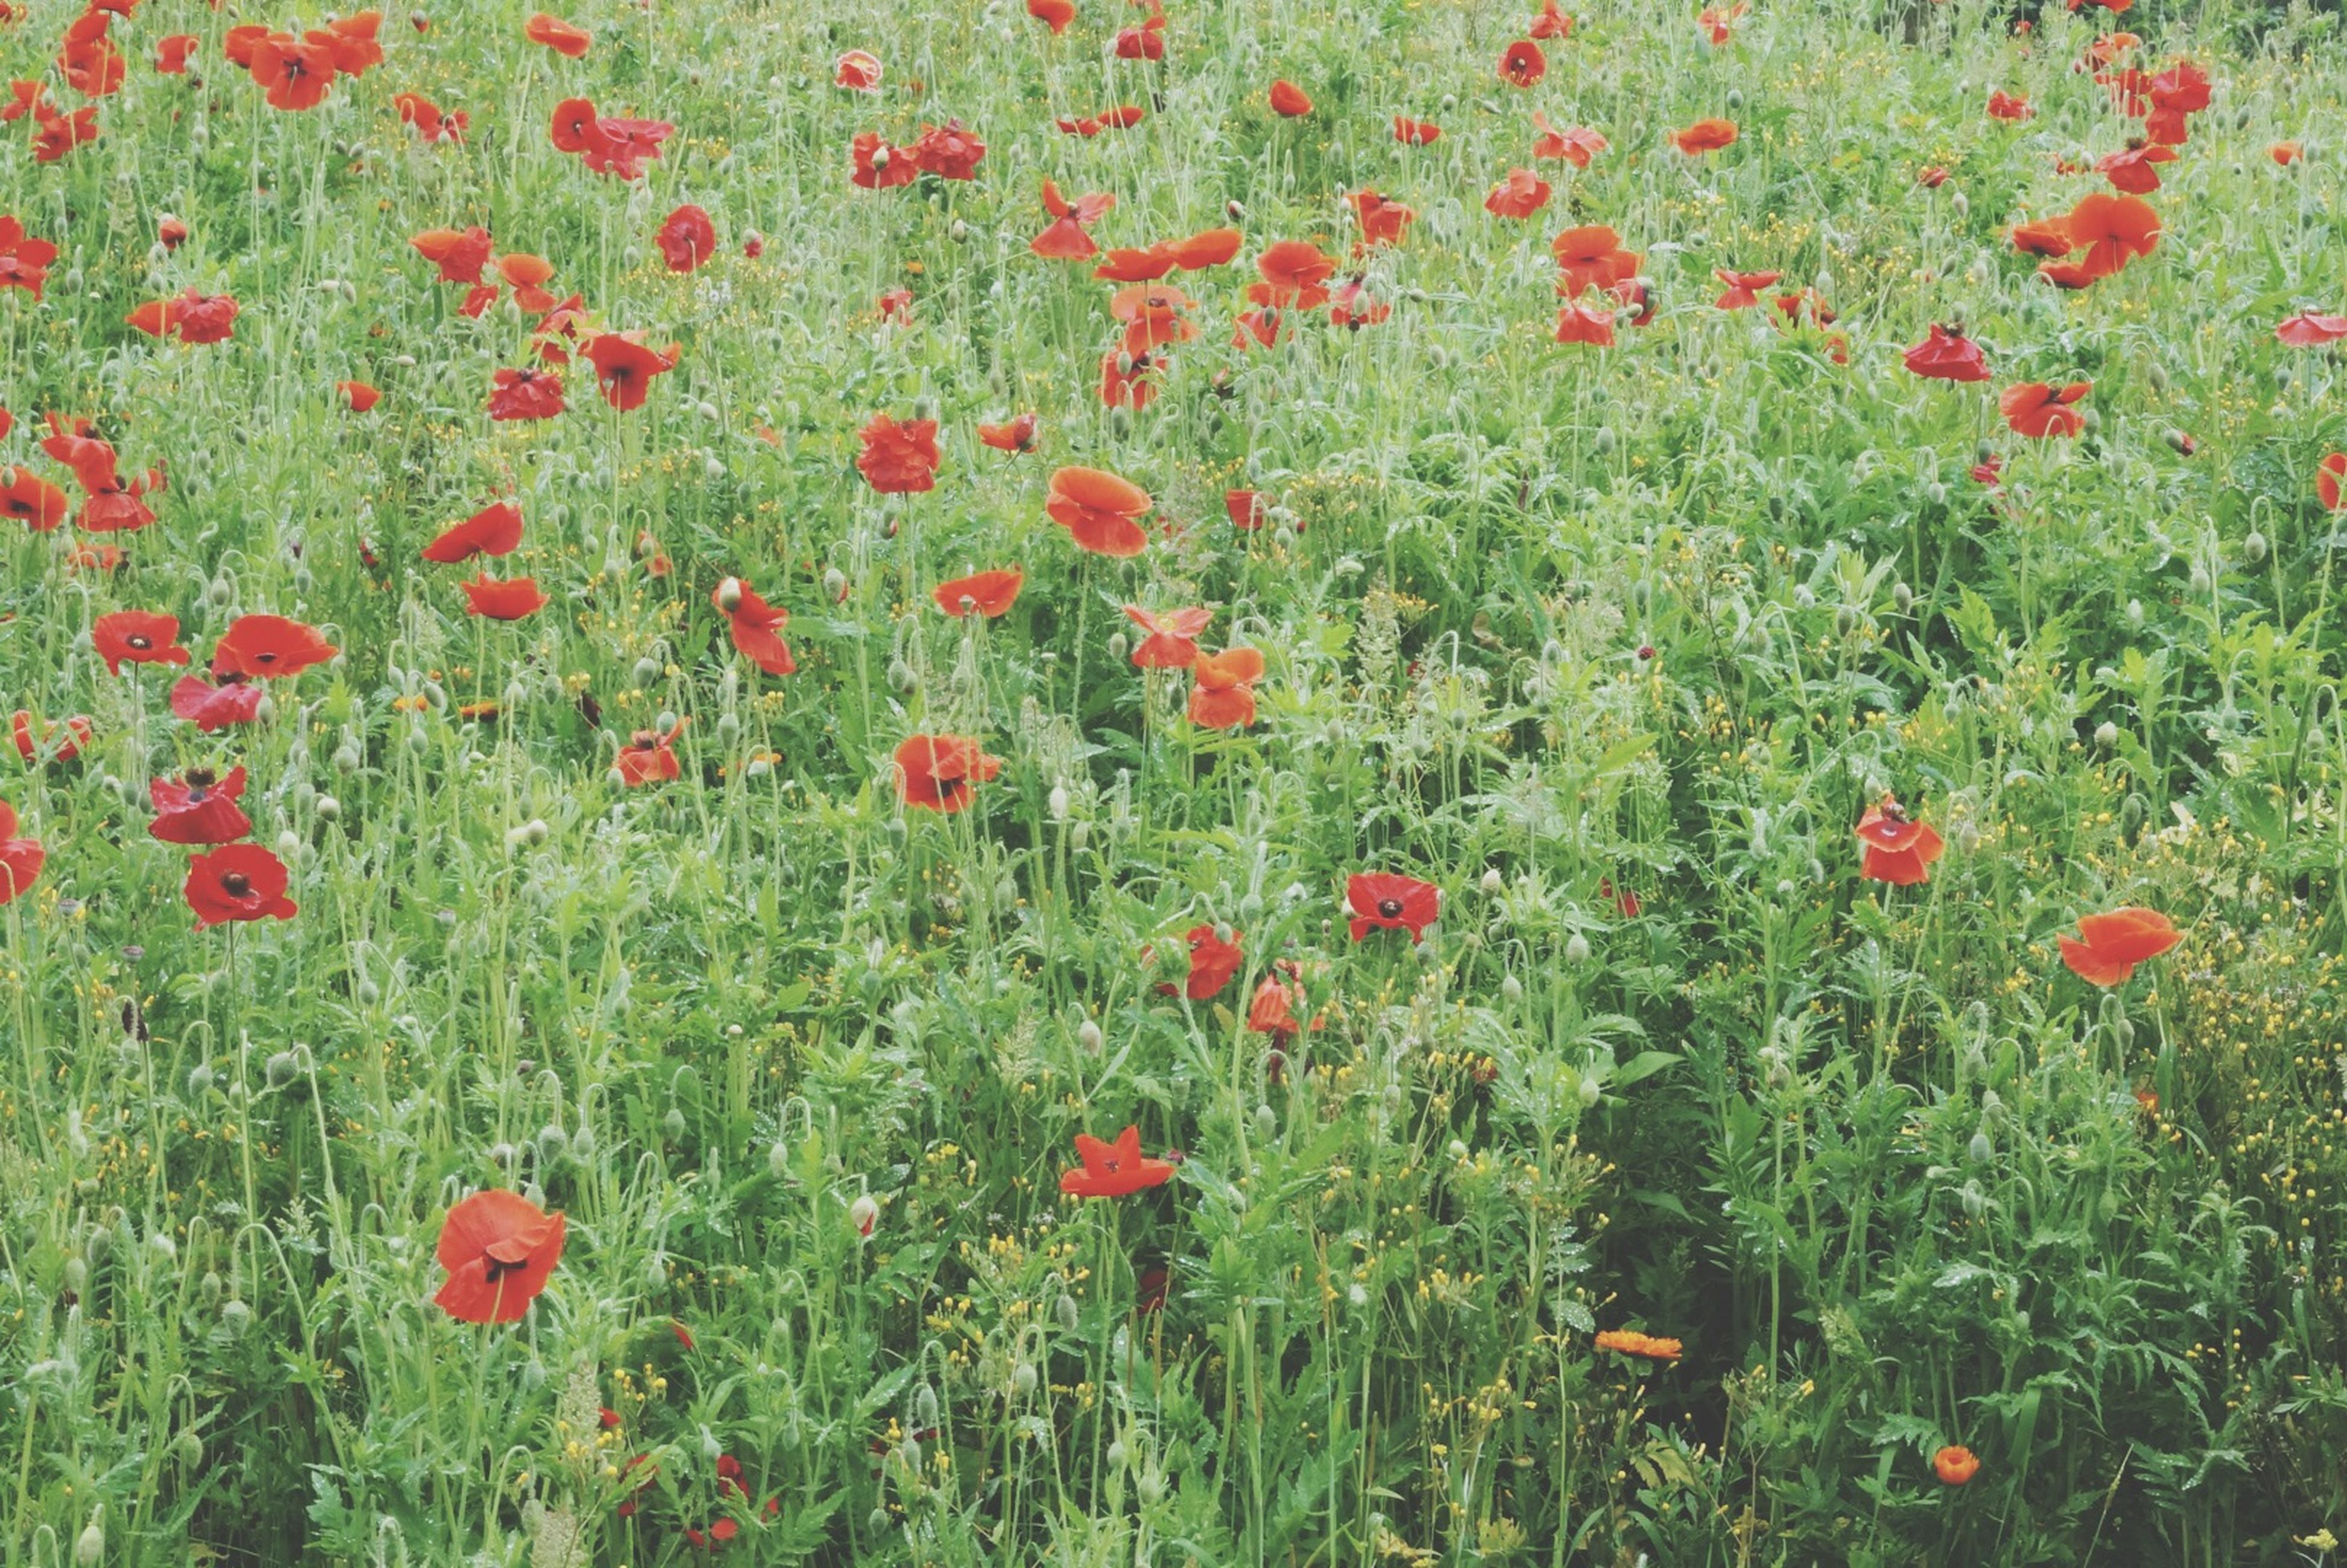 flower, freshness, red, growth, beauty in nature, field, poppy, plant, fragility, nature, blooming, high angle view, petal, green color, abundance, flower head, grass, in bloom, day, tranquility